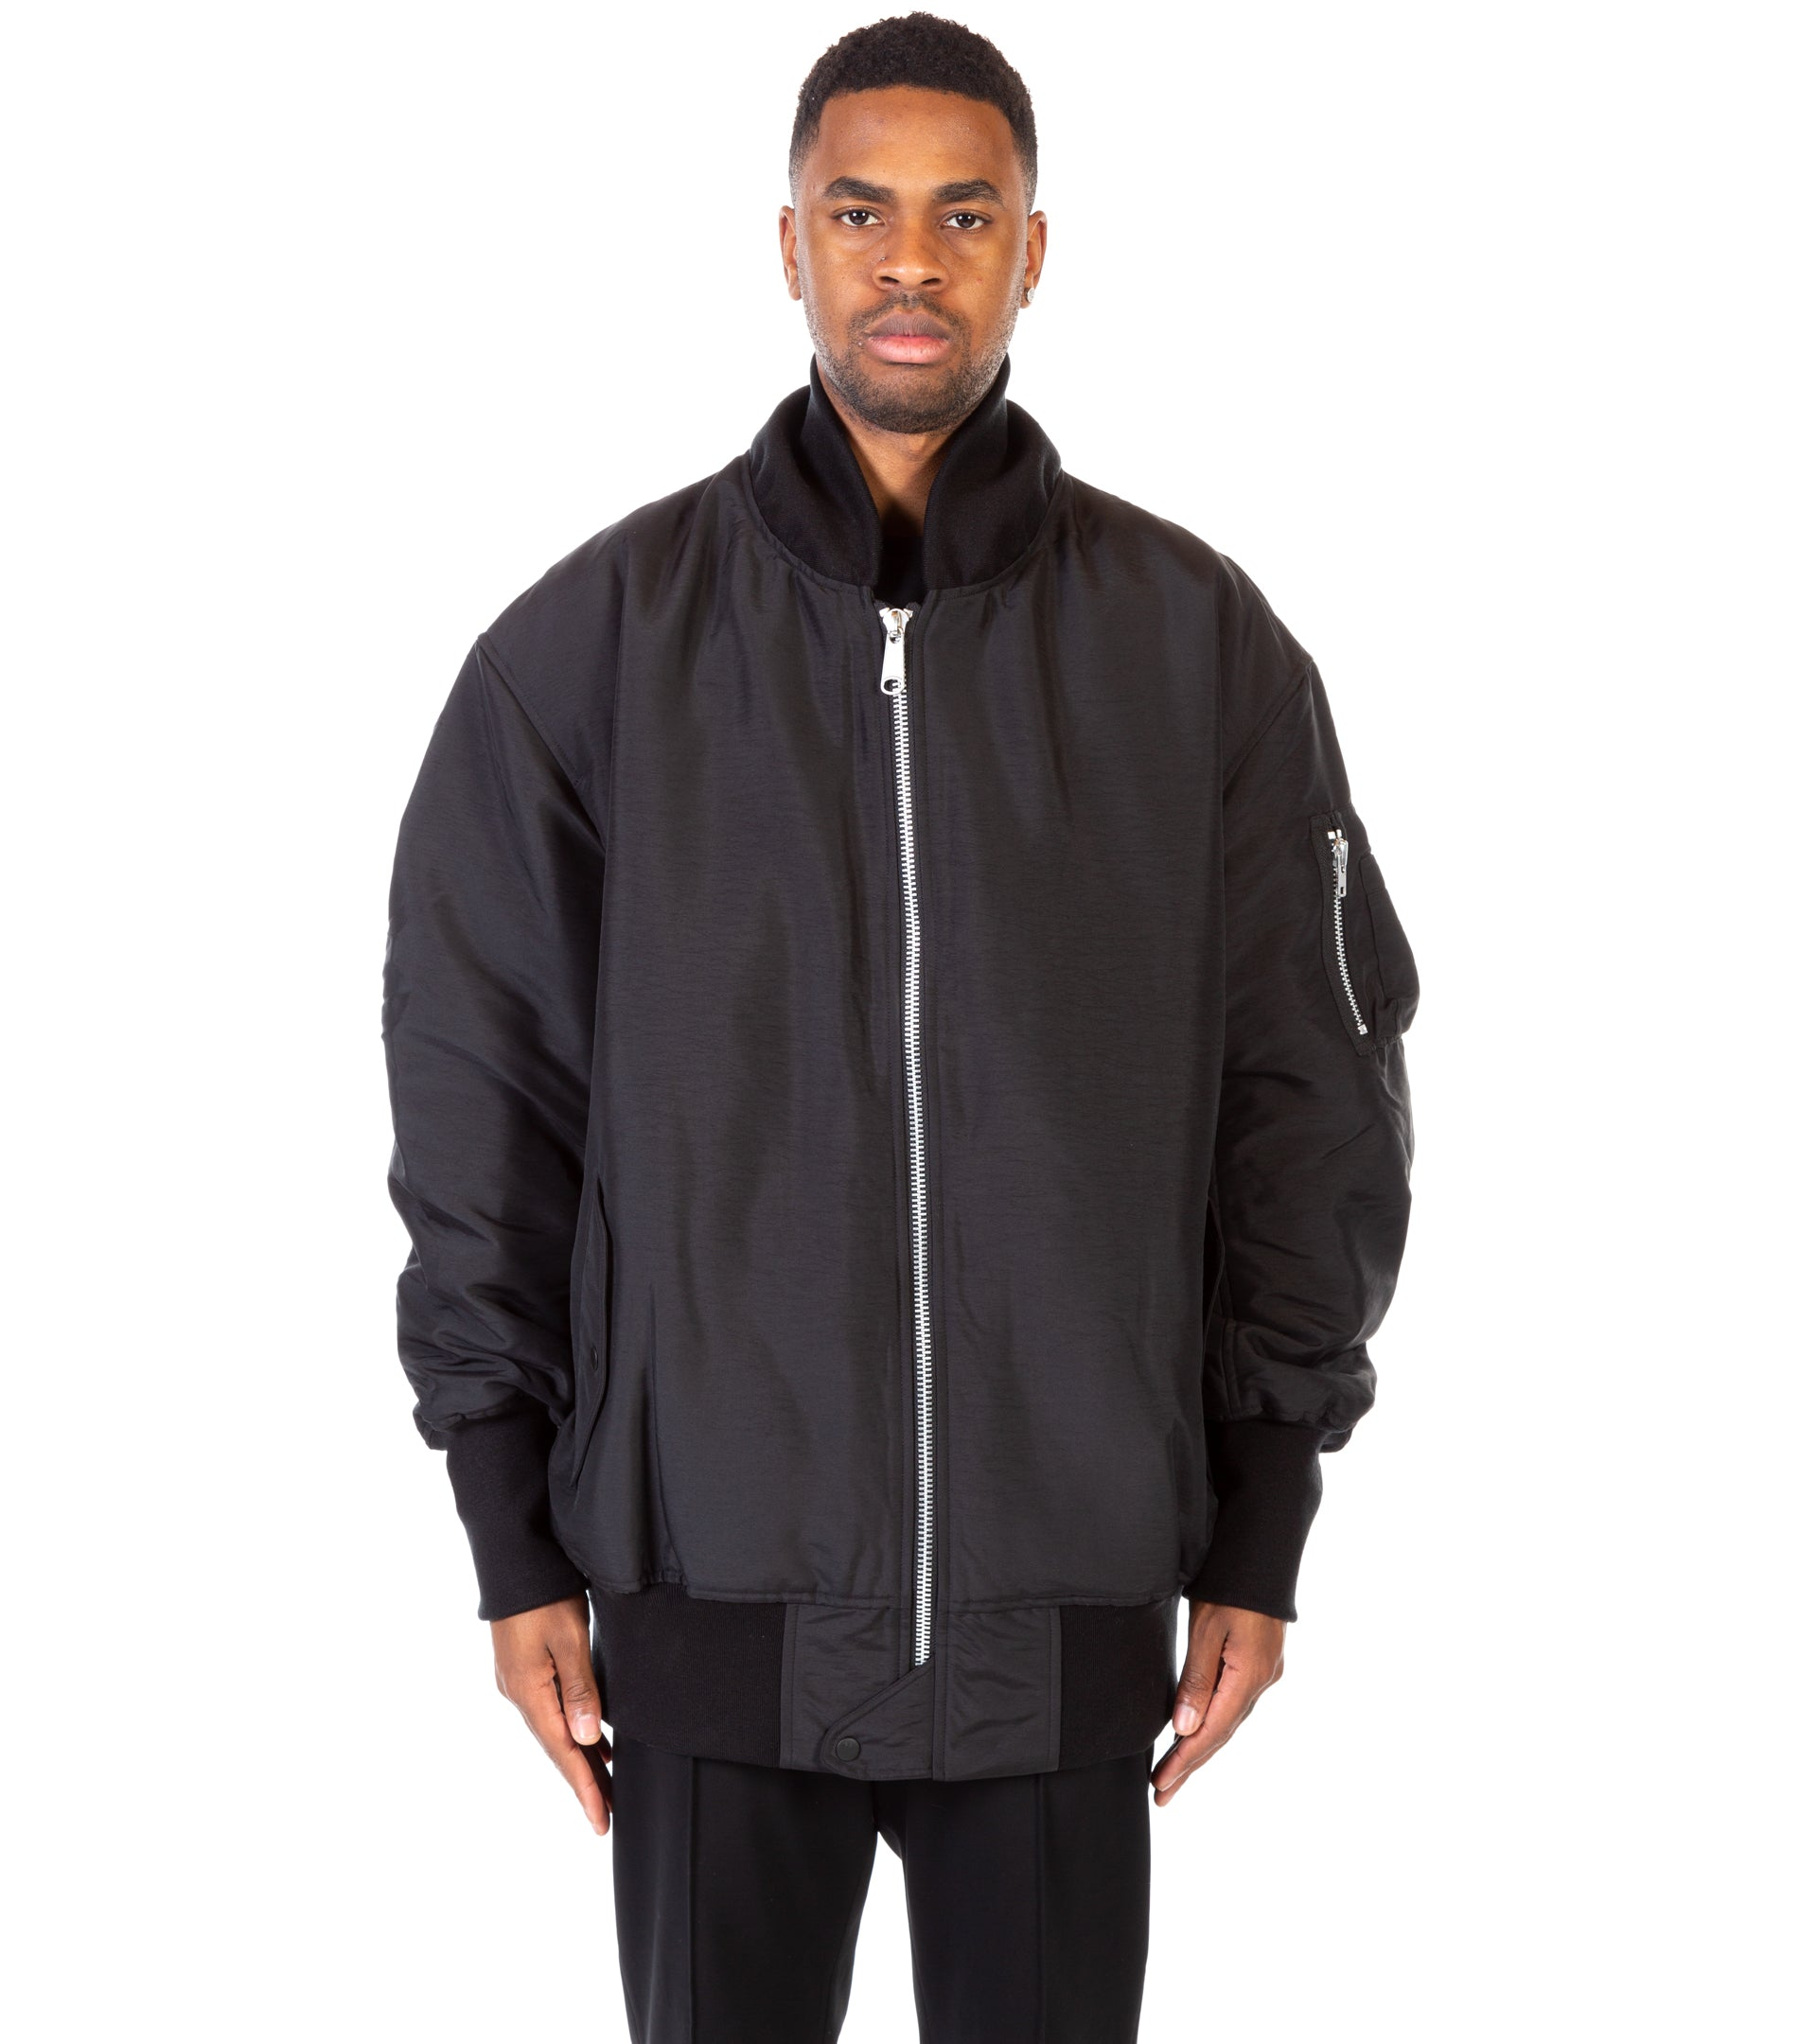 78bd65b86 All Products. OVERSIZED BOMBER ...